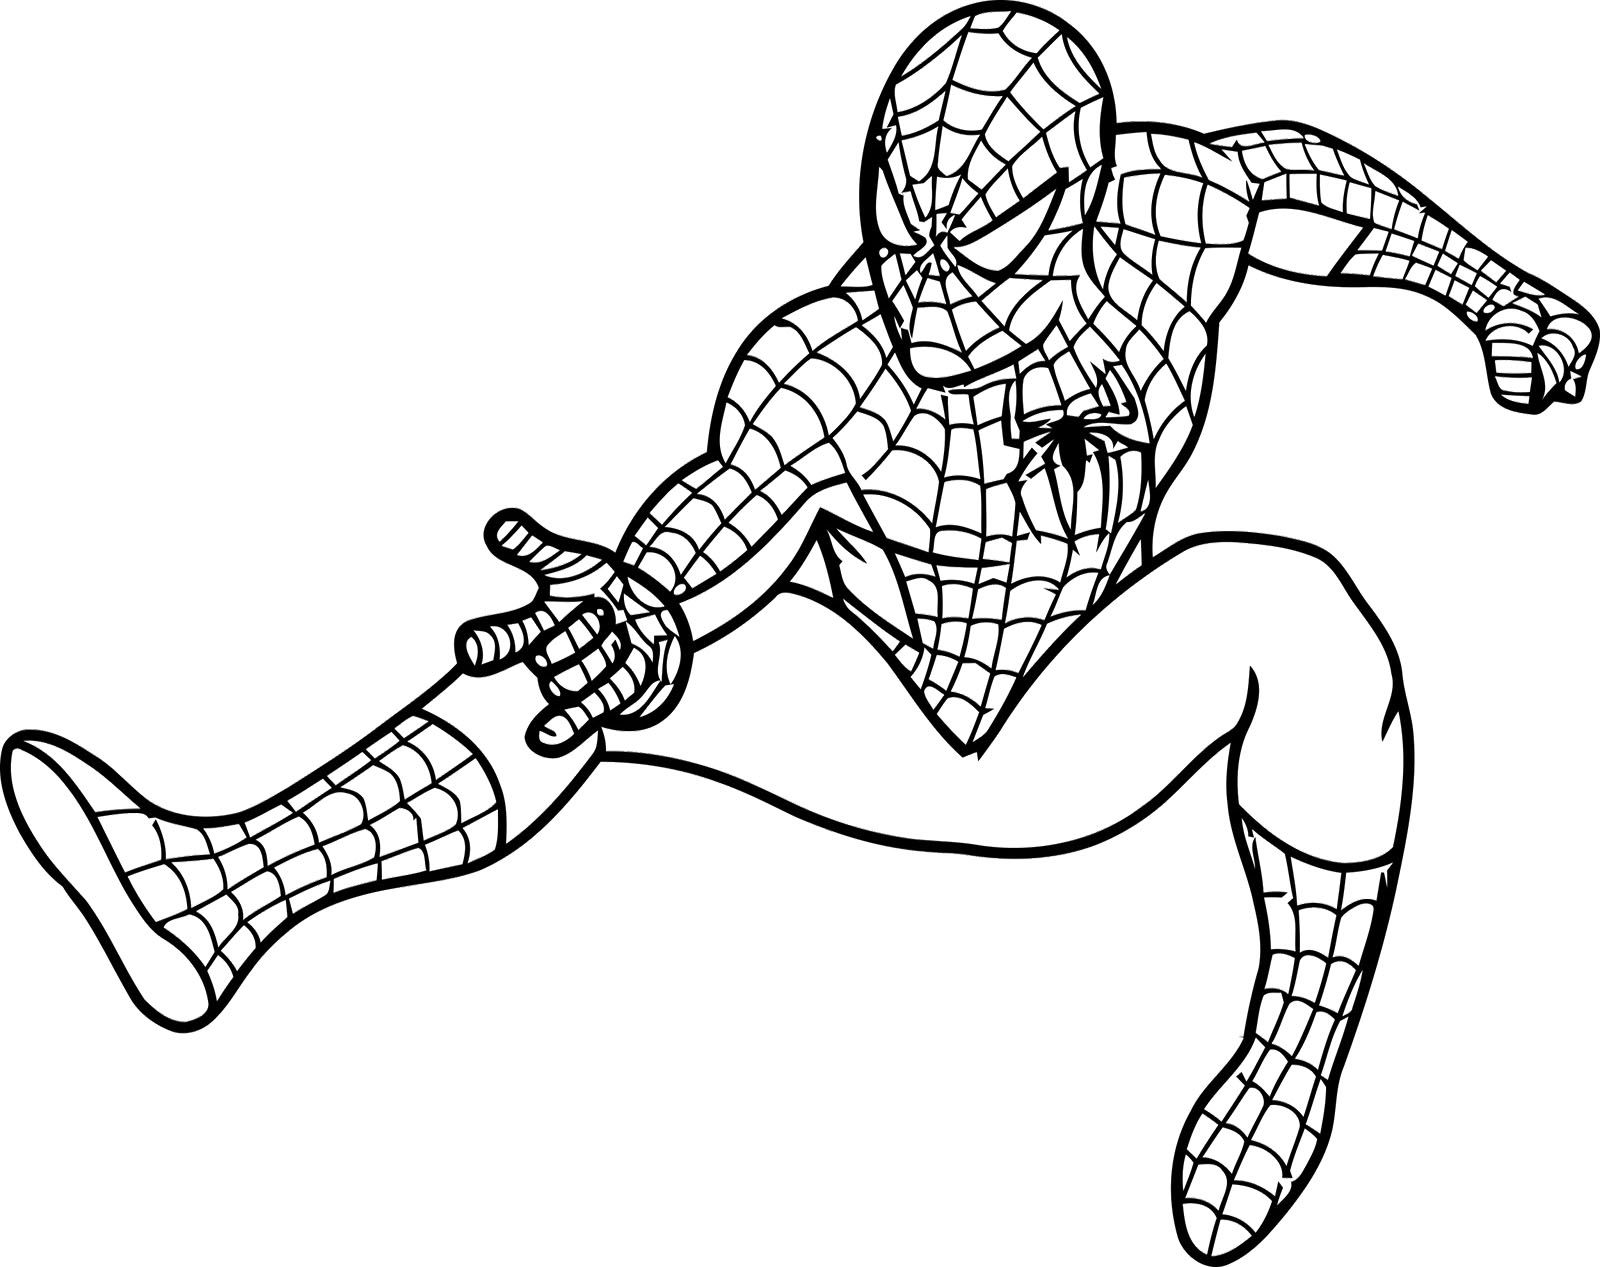 Coloring Pages Spiderman Printable Coloring Pages 1000 images about spider man coloring pages on pinterest and for kids